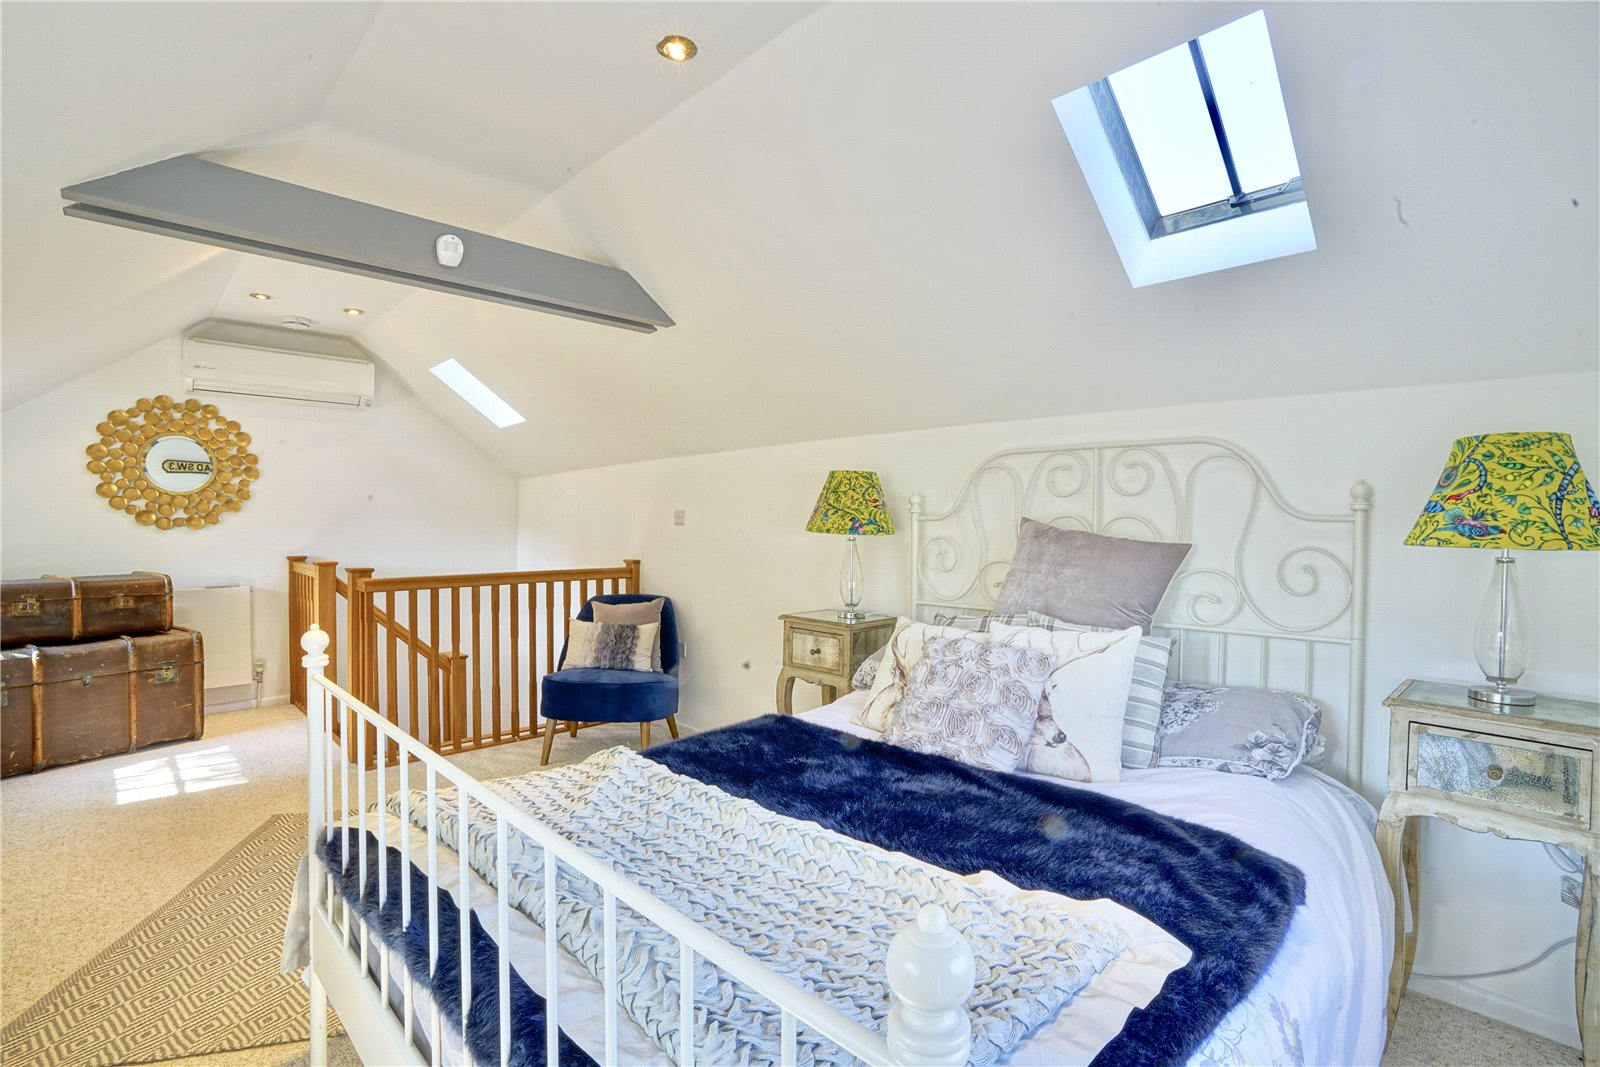 3 bed house for sale in Great Staughton 13